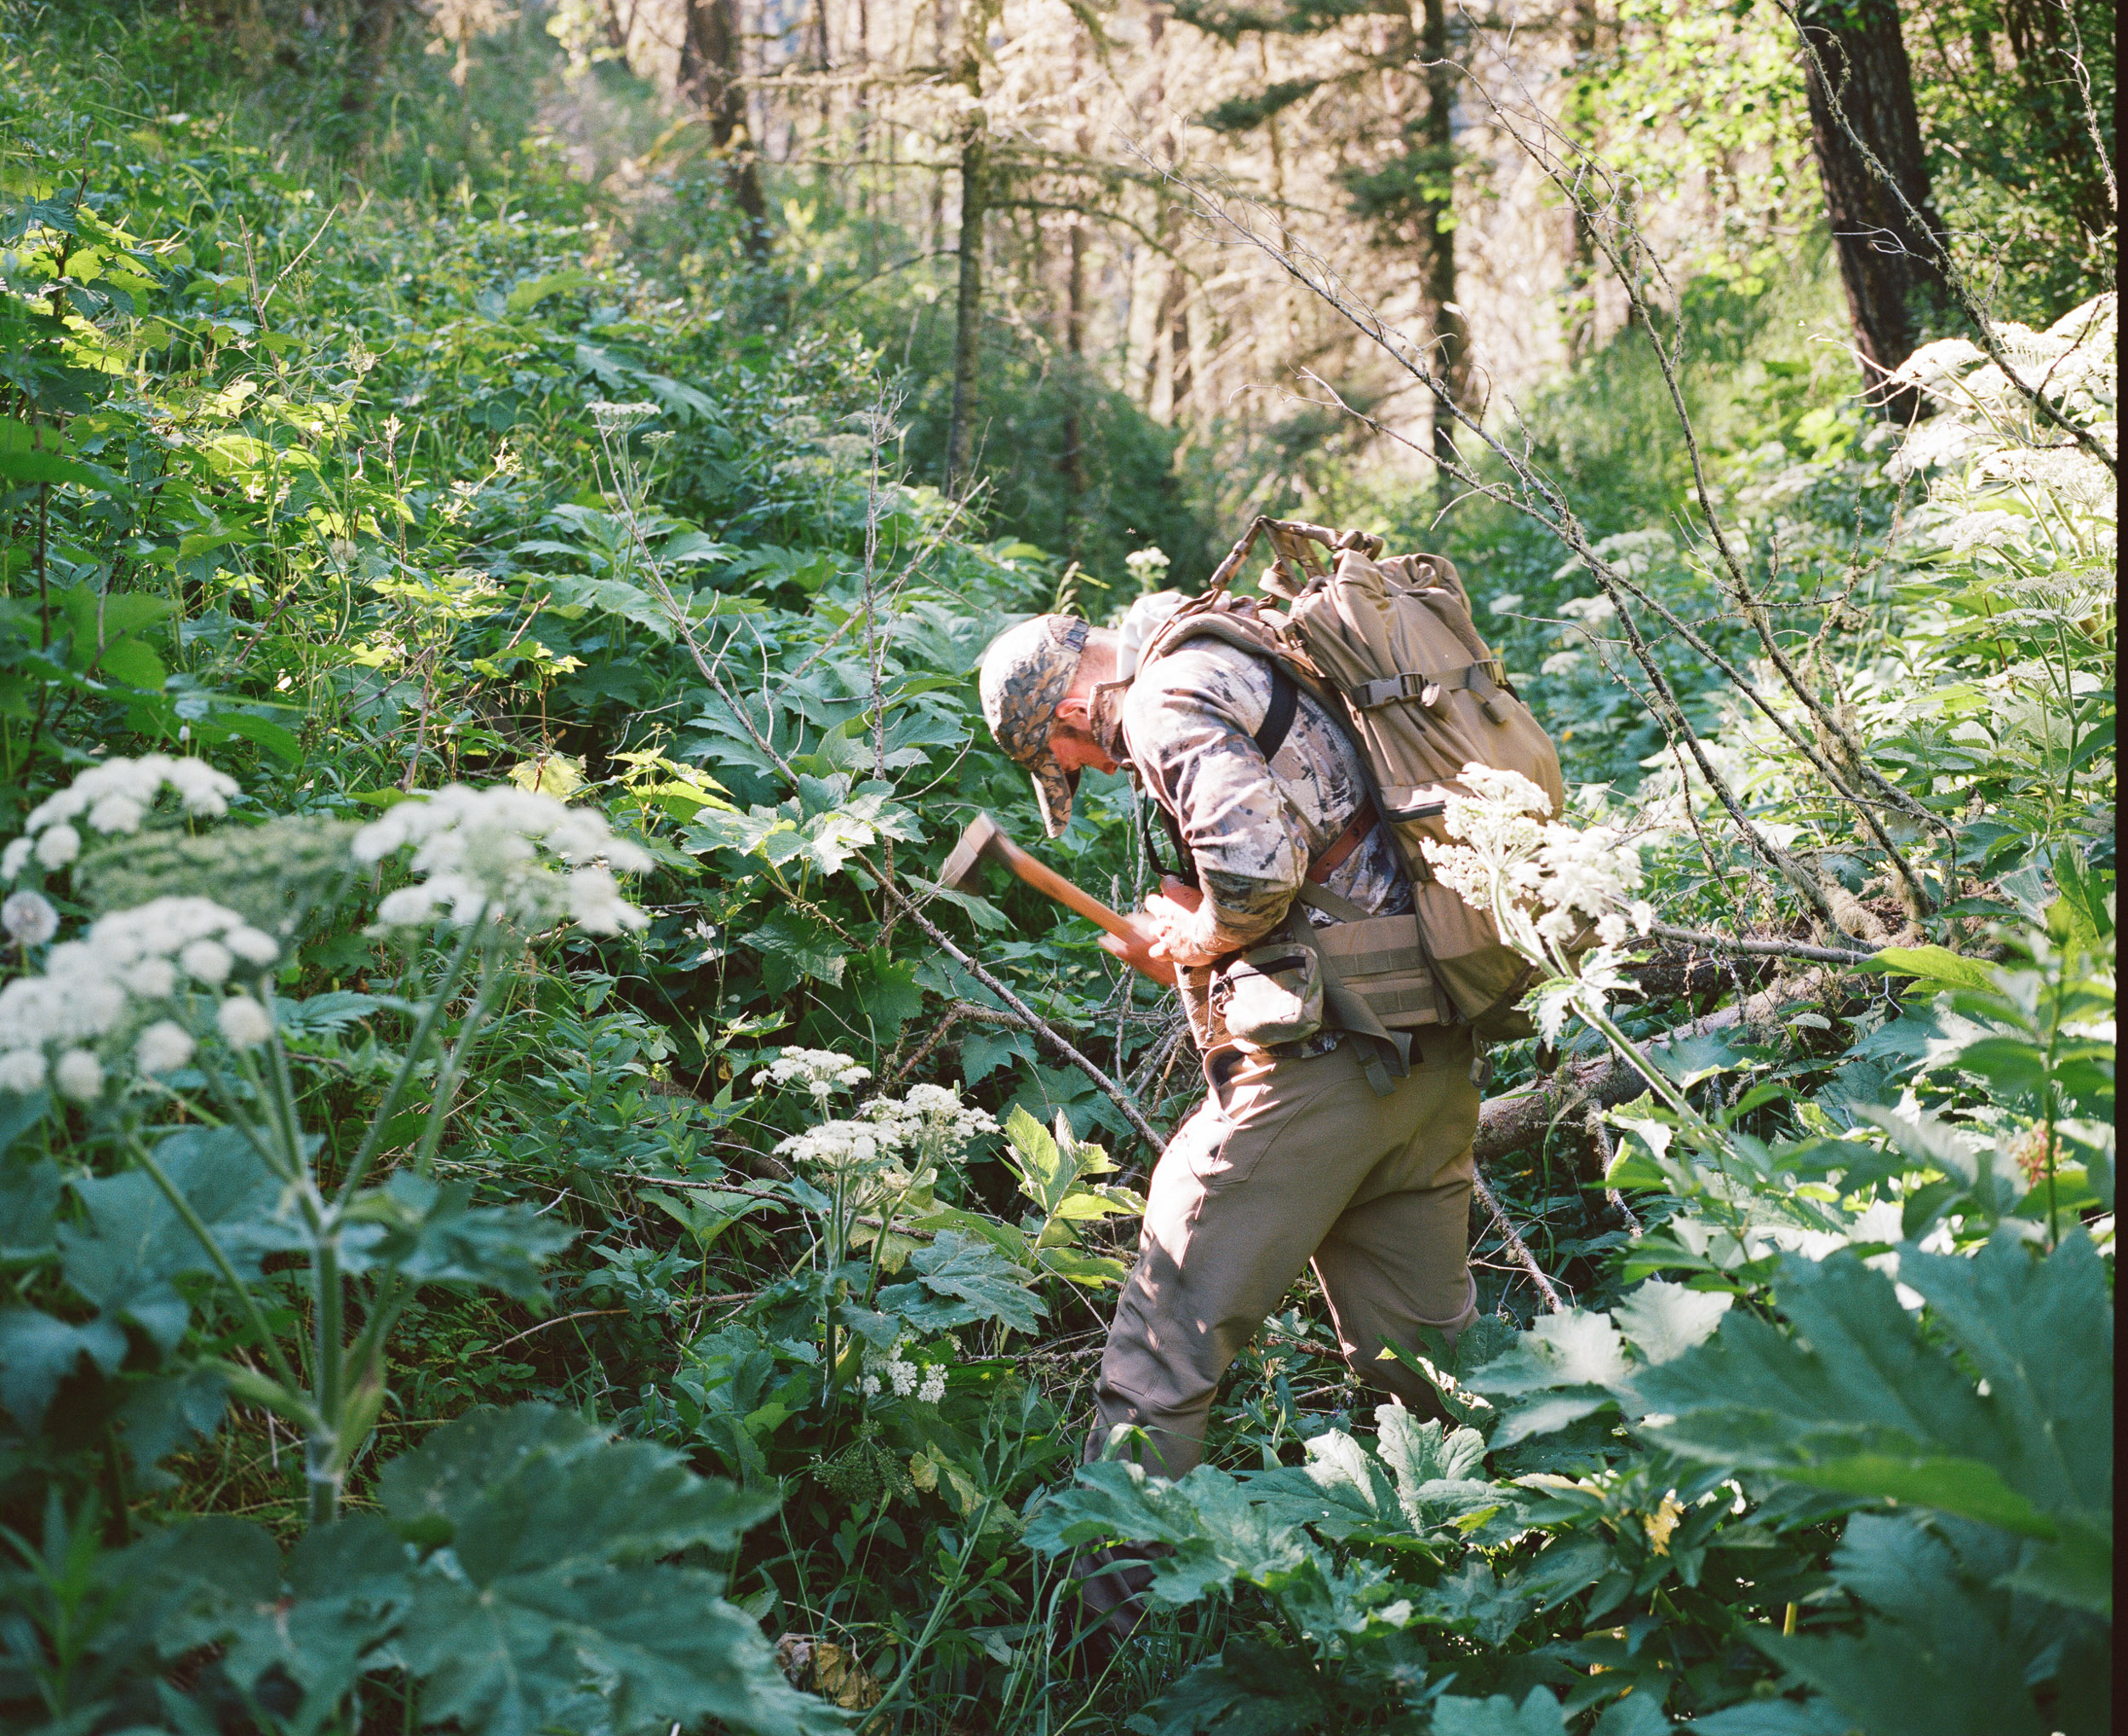 Hunter with a hatchet chopping and surrounded by grasses and flowers